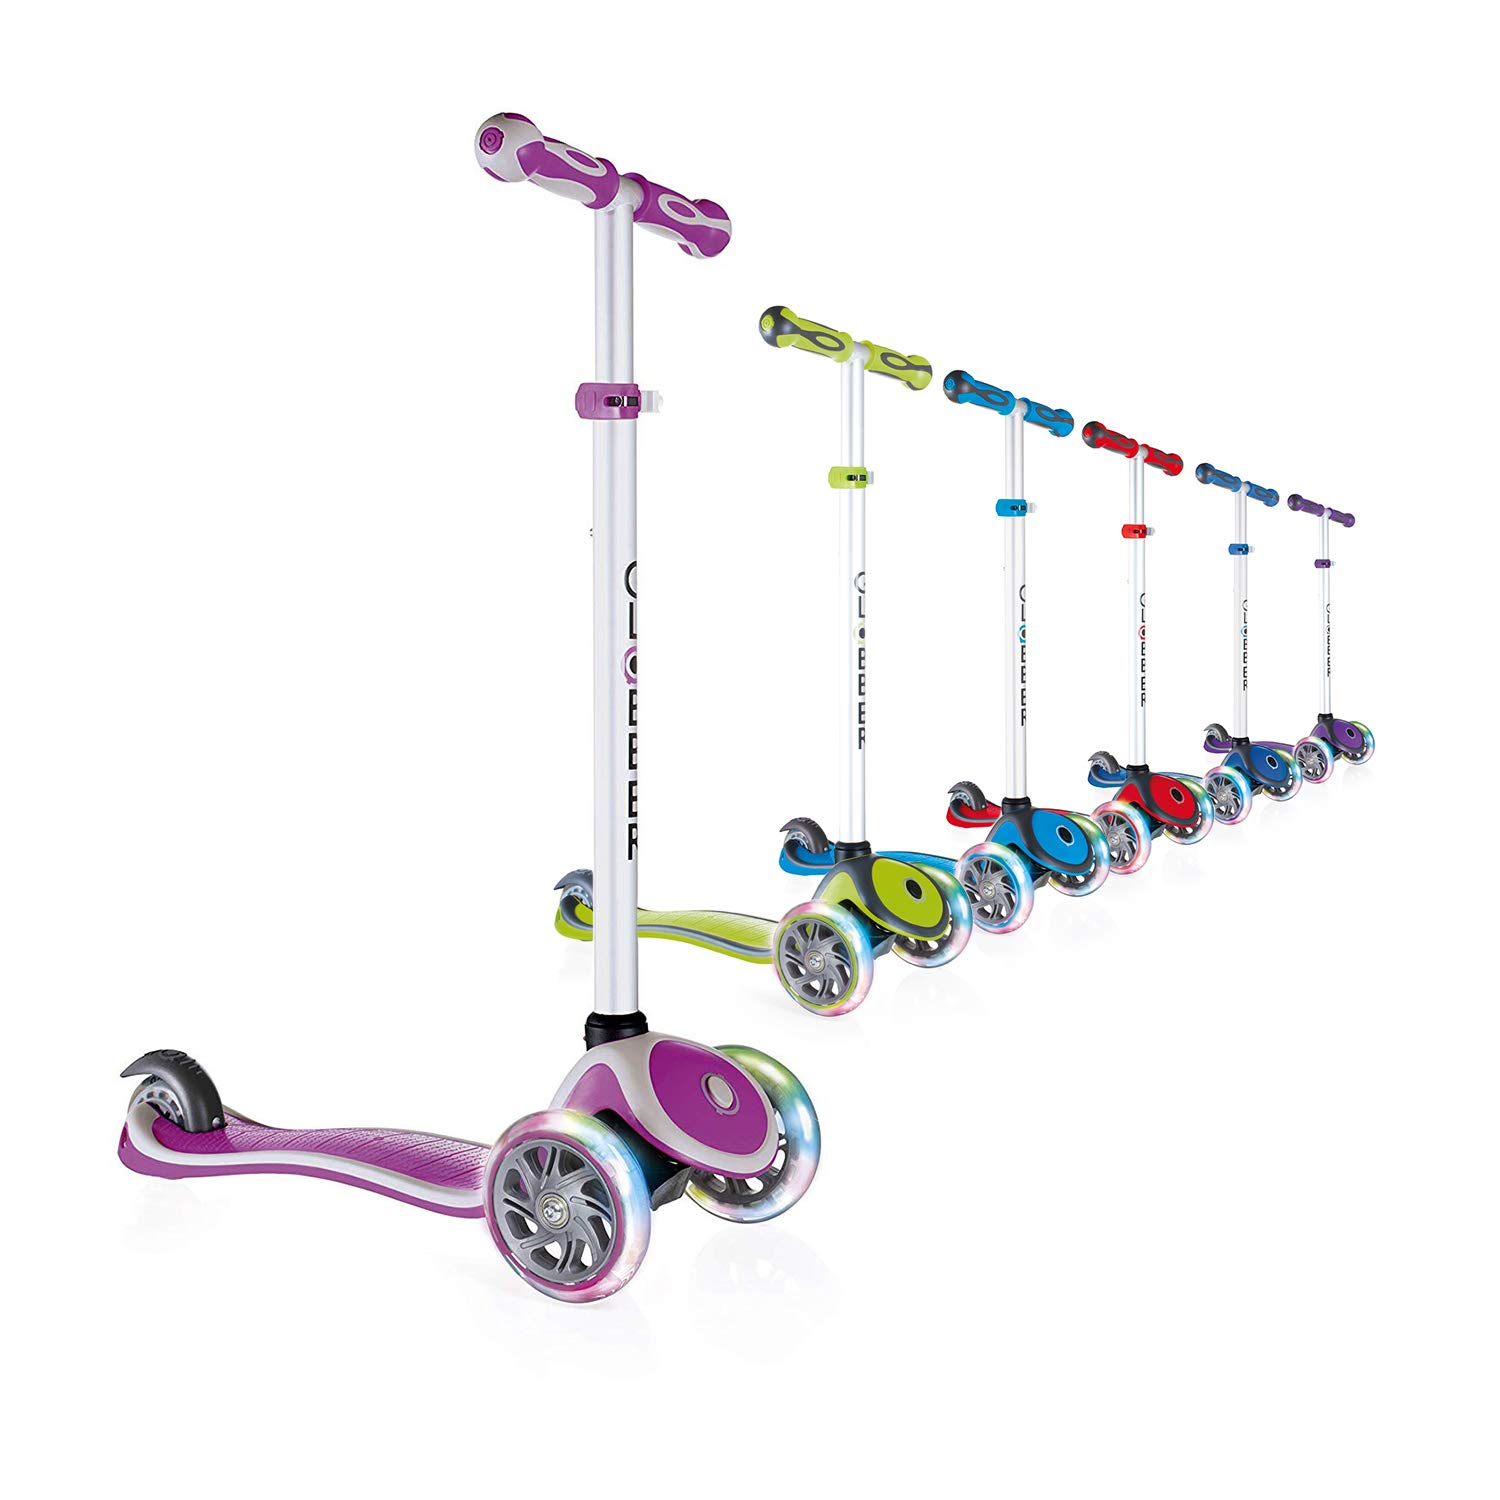 Globber V2 3-Wheel 4 Adjustable Height Scooter W/ Flashing Lights Zero Assembly Patented Steering Lock Great for Kids Toddlers Girls Boys Reinforced Body Supports Up to 110lbs by Globber